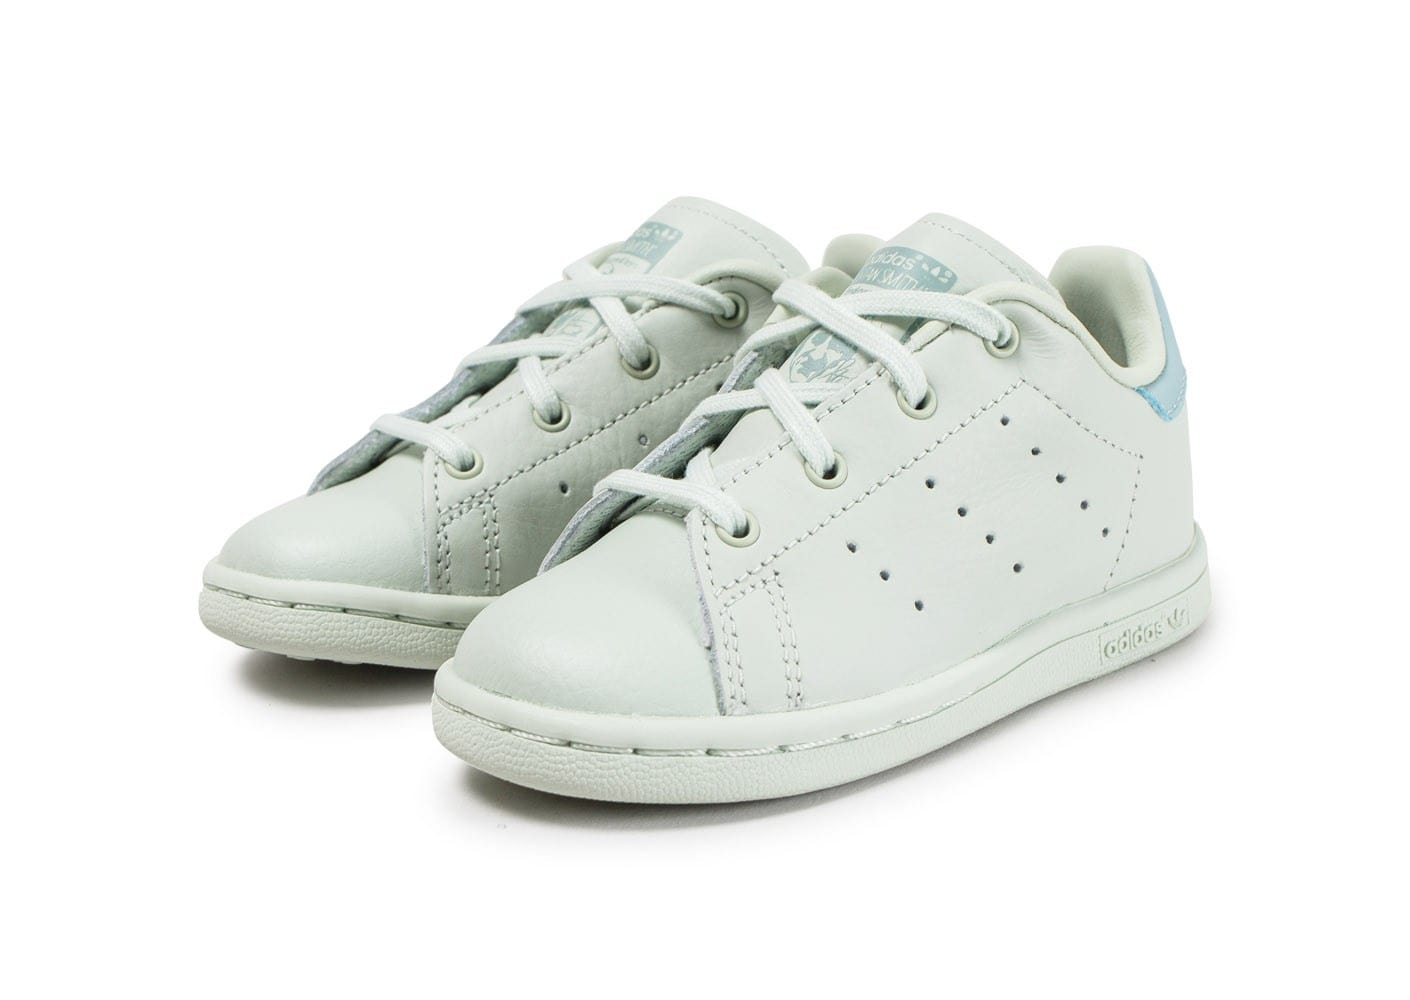 adidas stan smith b b vert pastel chaussures adidas chausport. Black Bedroom Furniture Sets. Home Design Ideas